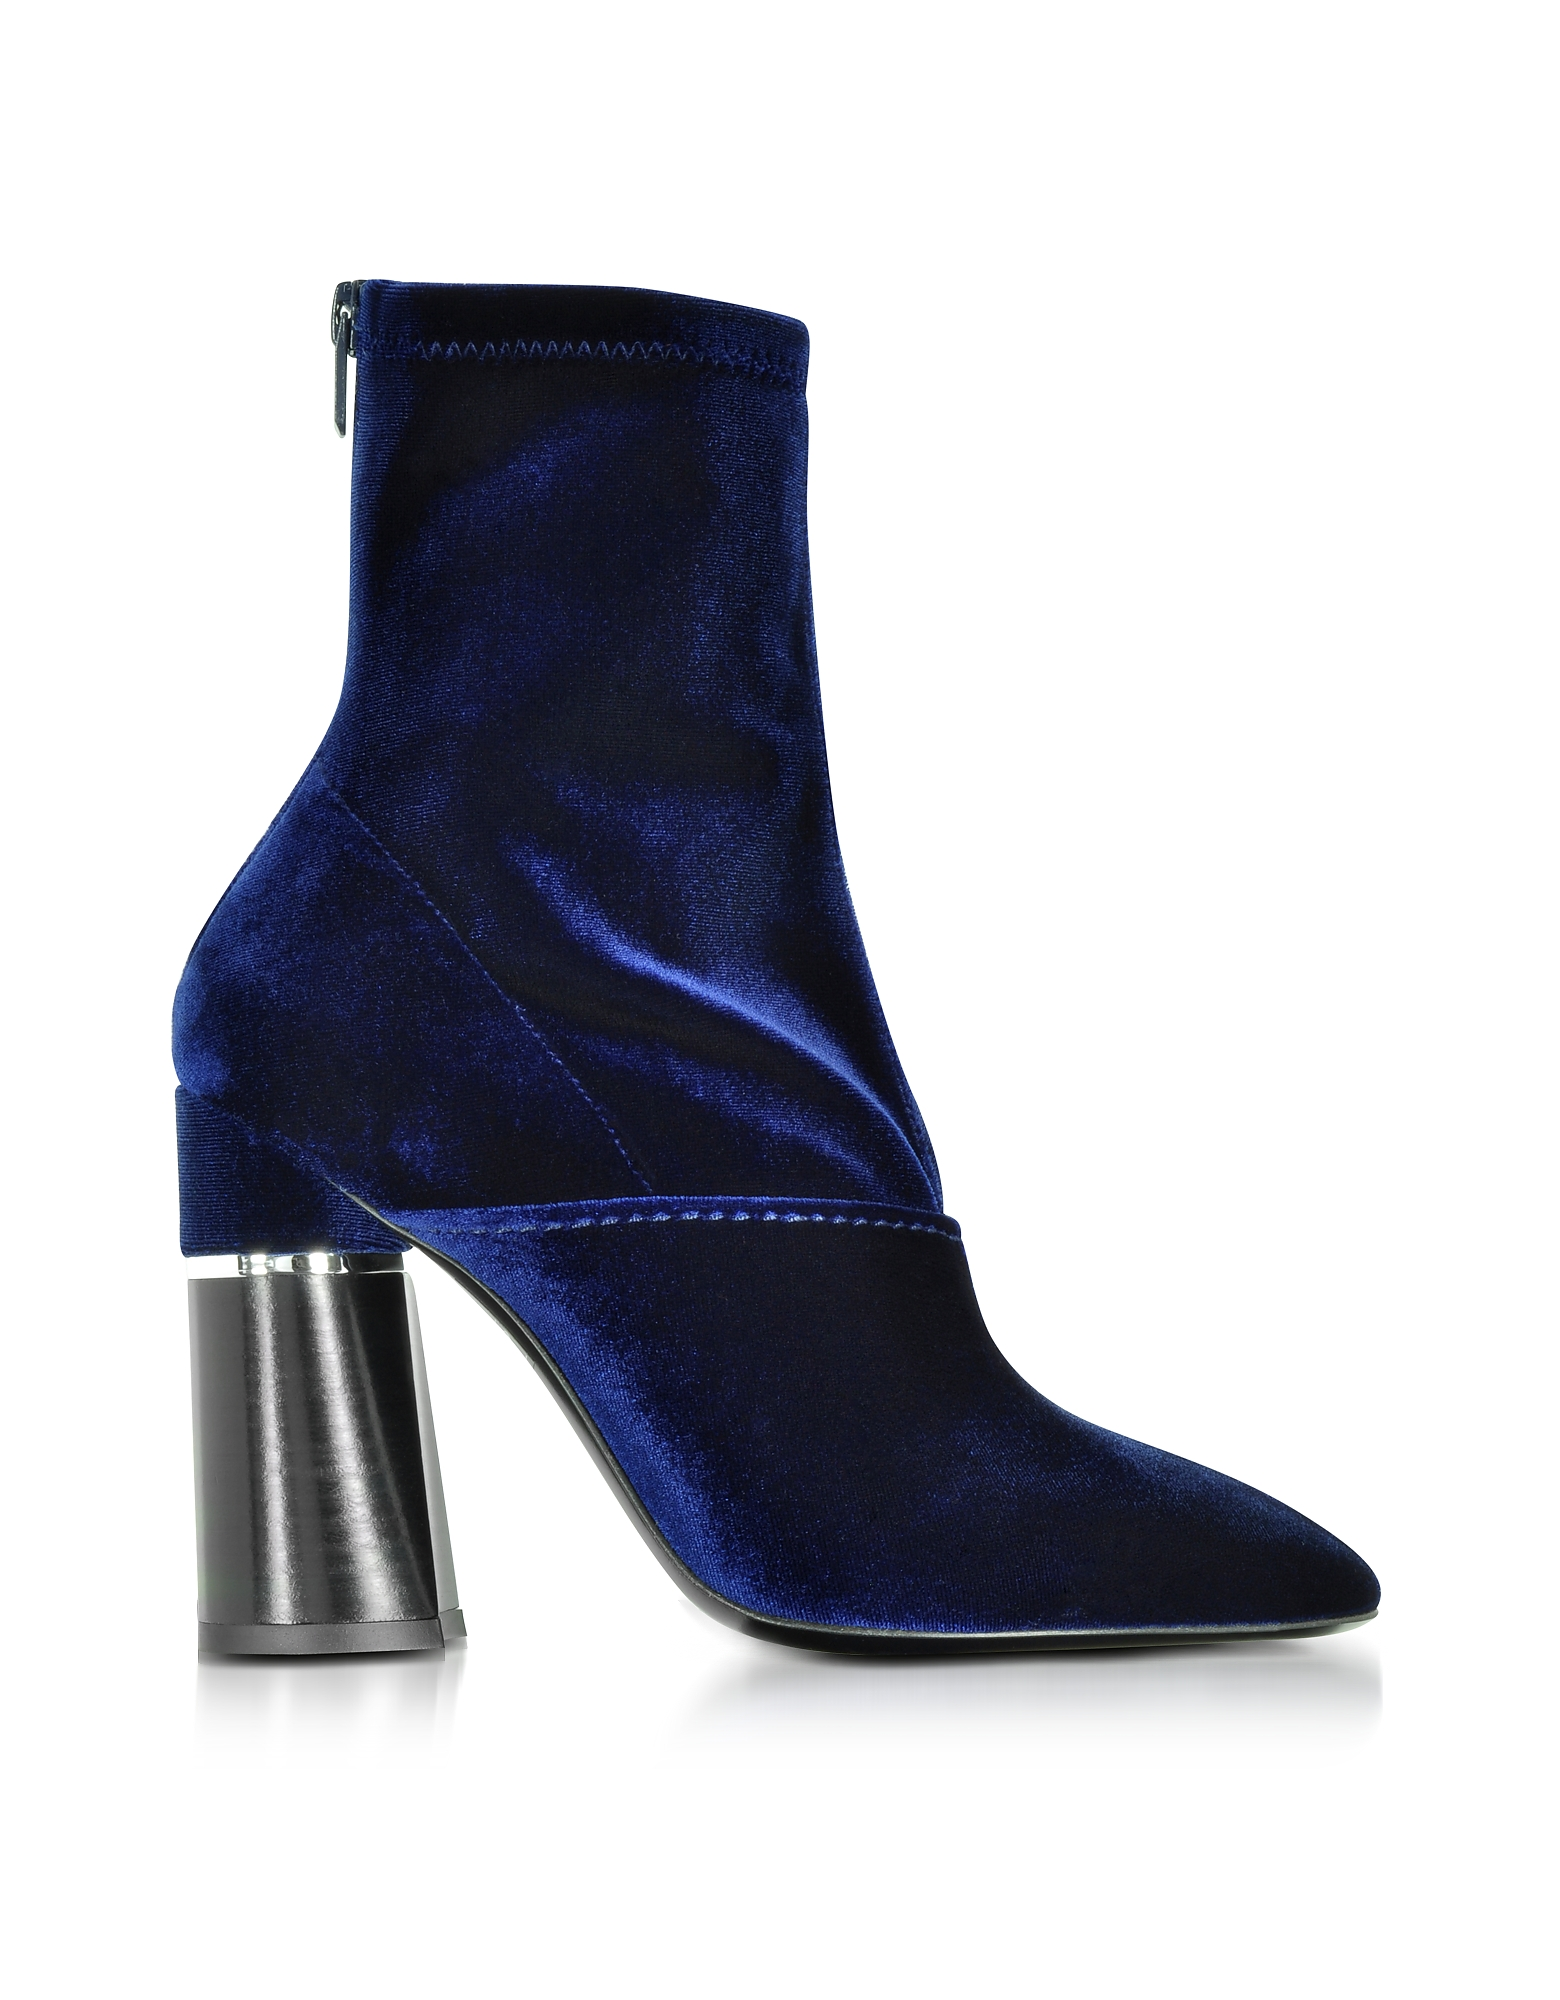 3.1 Phillip Lim Shoes, Kyoto Royal Blue Velvet Stretch High Heel Ankle Boots